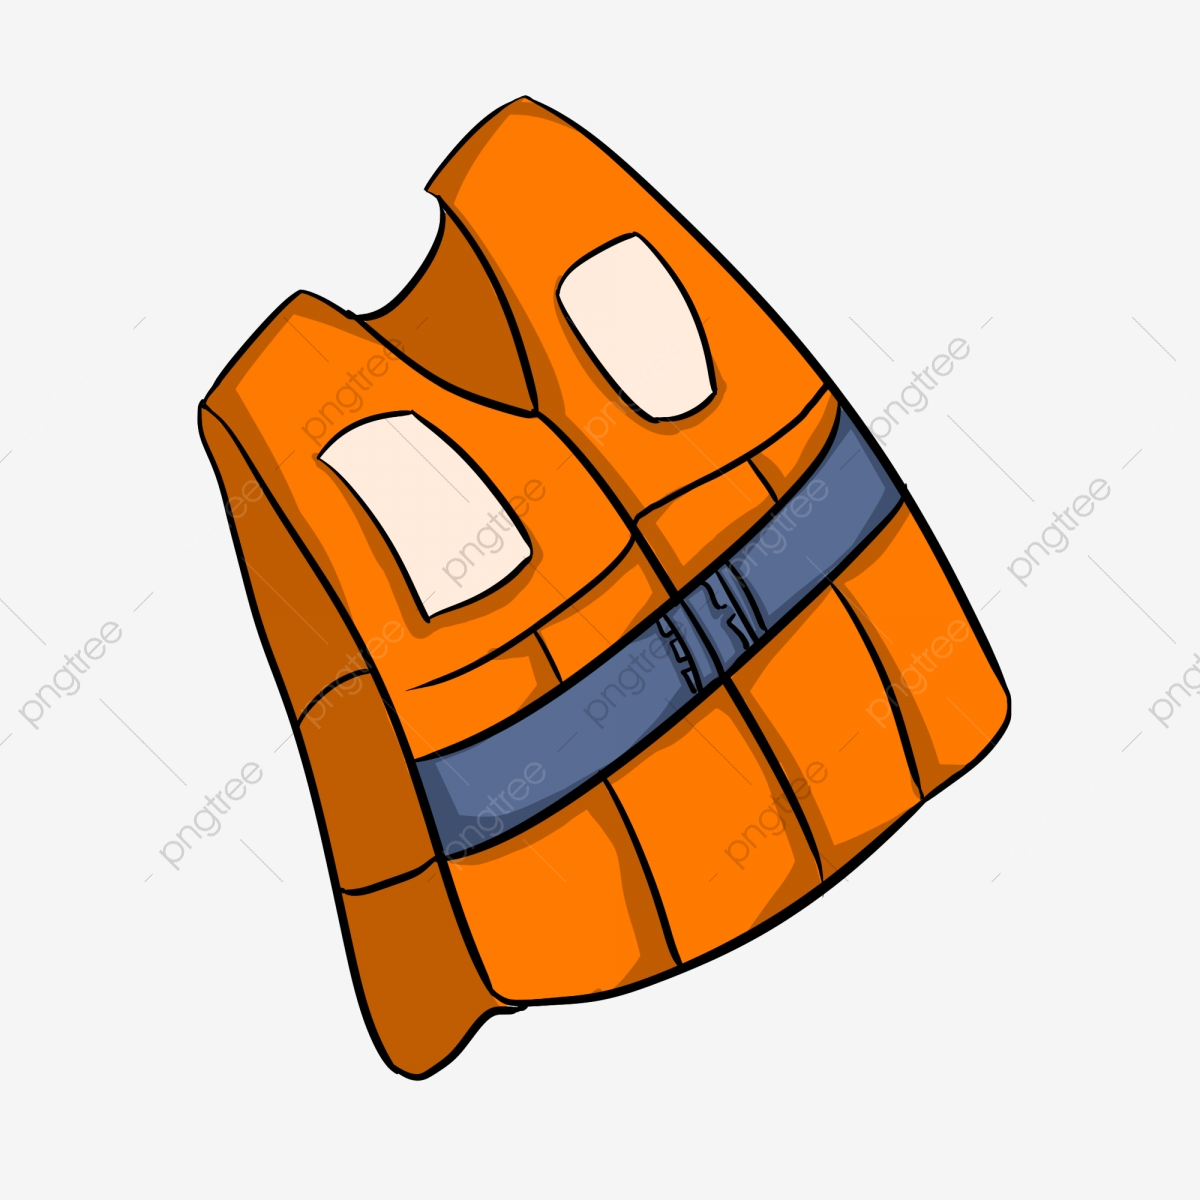 Hand Painted Flood Resistance Rescue Life Jacket Illustration Flood Natural Disaster Png Transparent Clipart Image And Psd File For Free Download